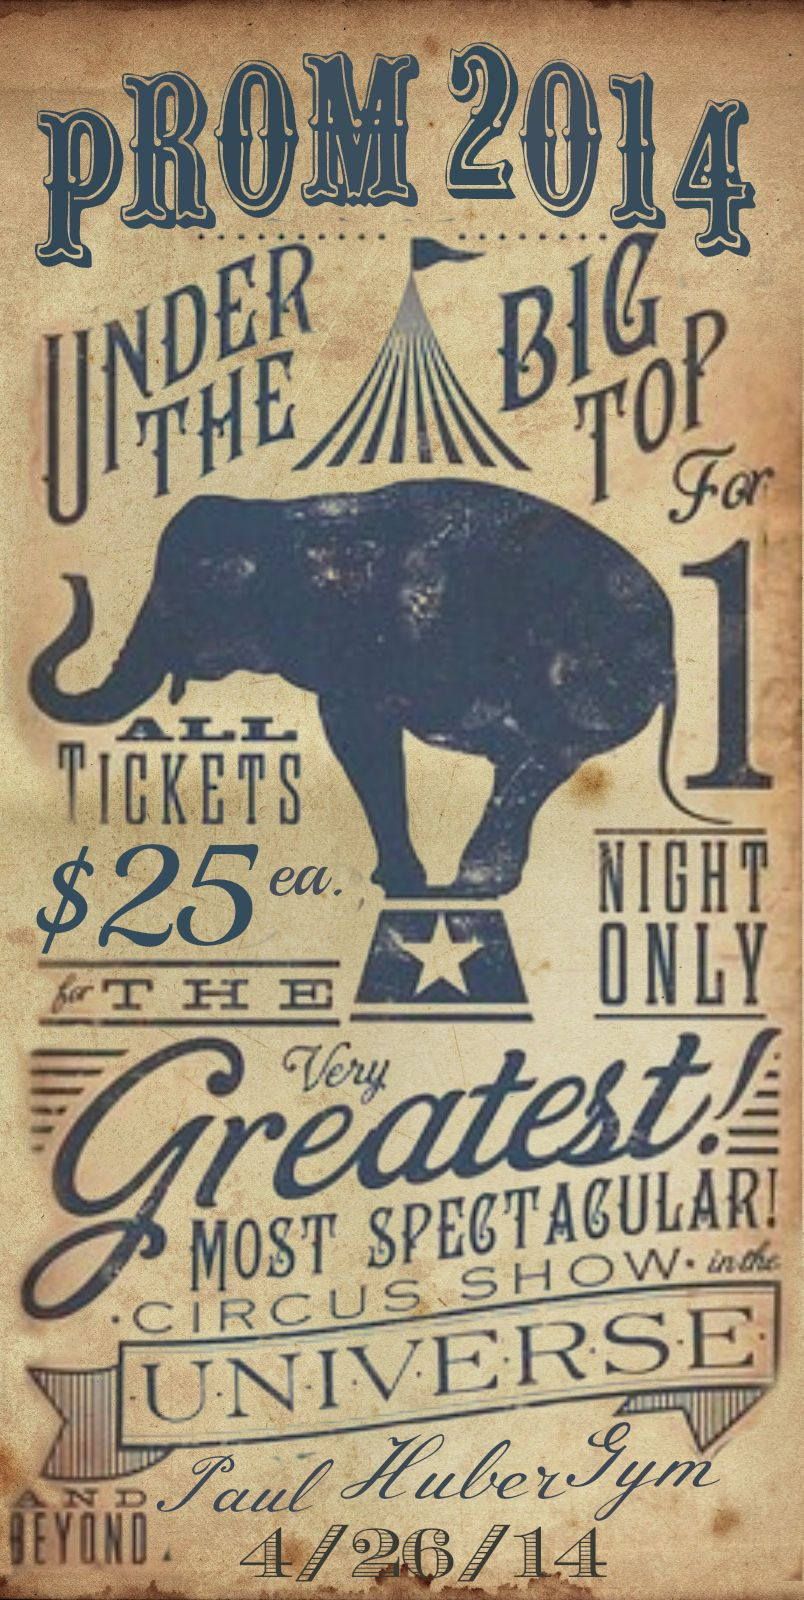 Prom Poster Vintage Circus Carnival Theme